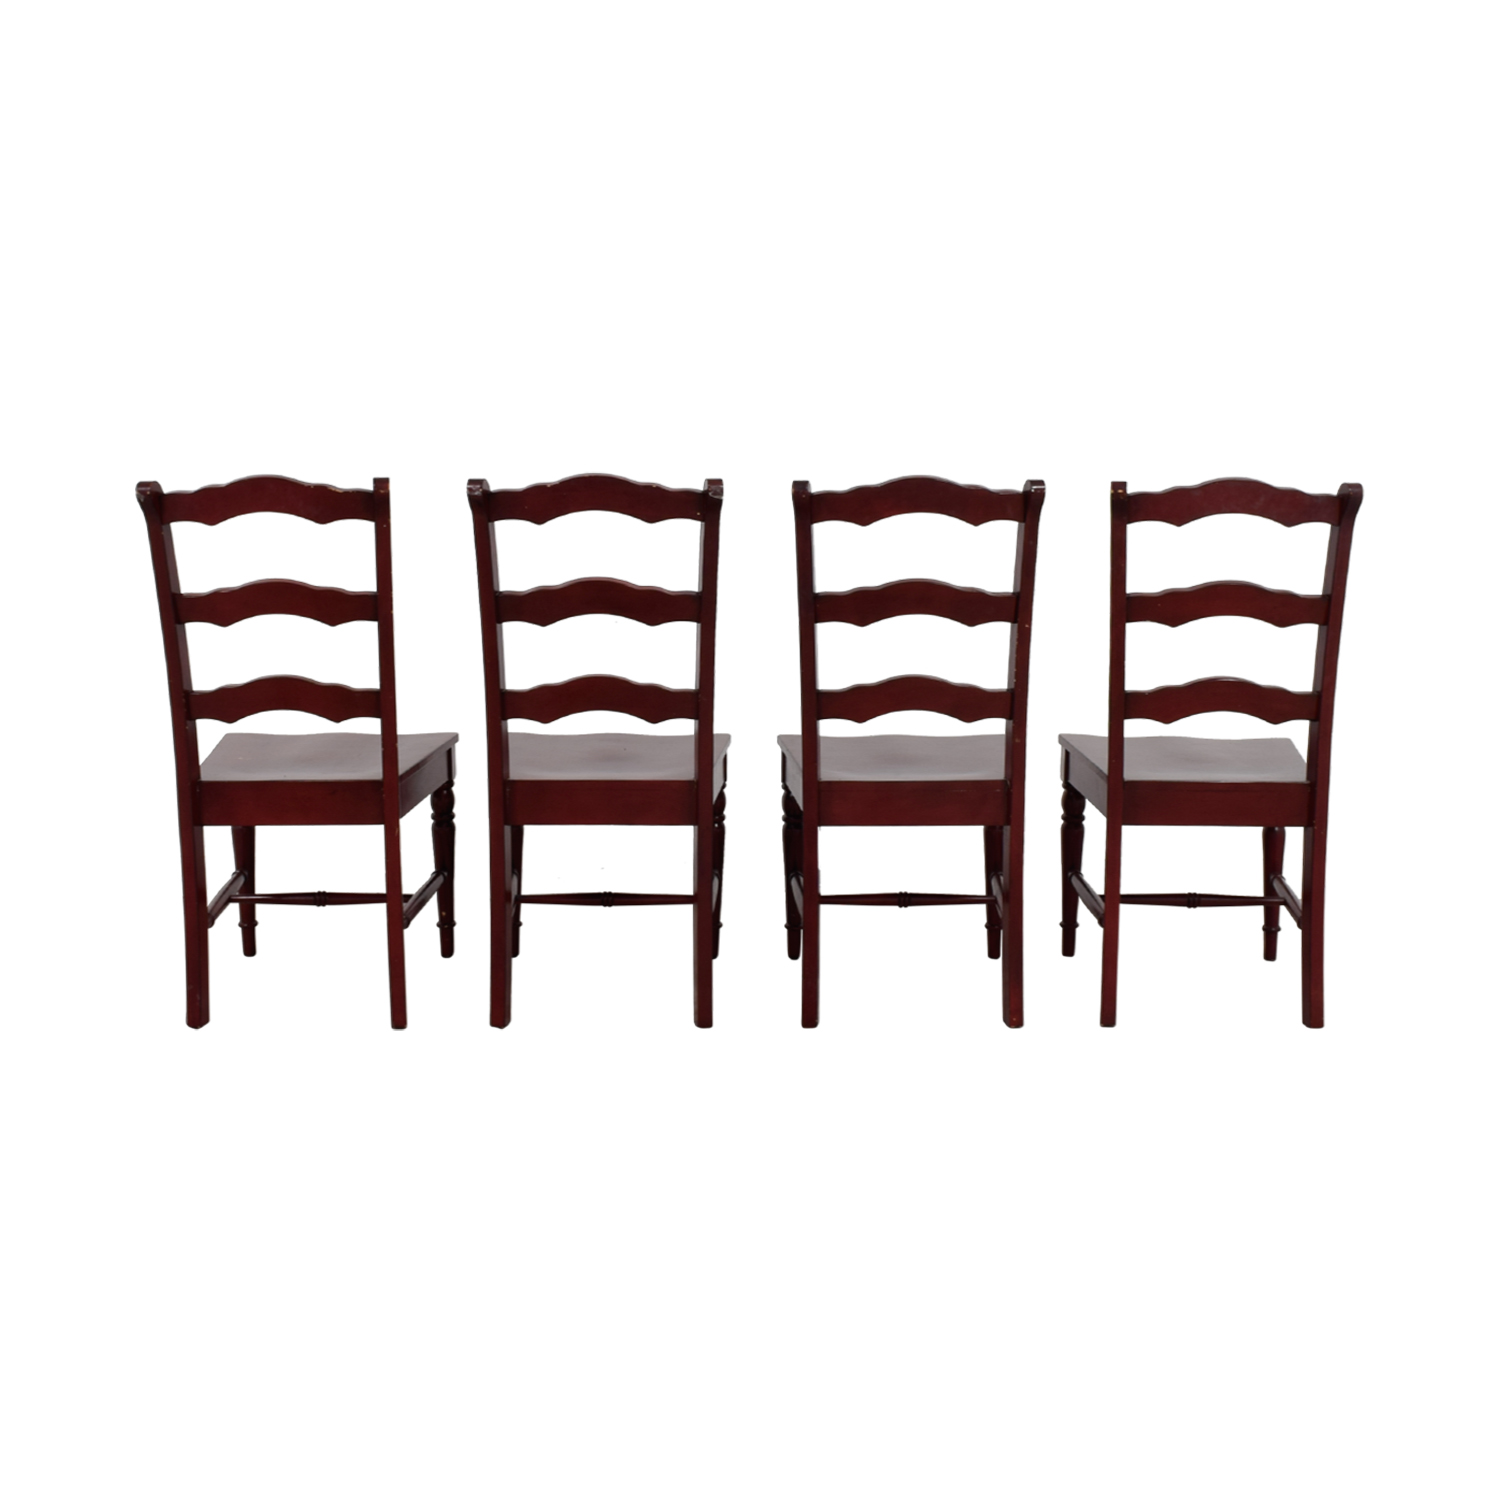 Pier 1 Imports Wood Chairs sale